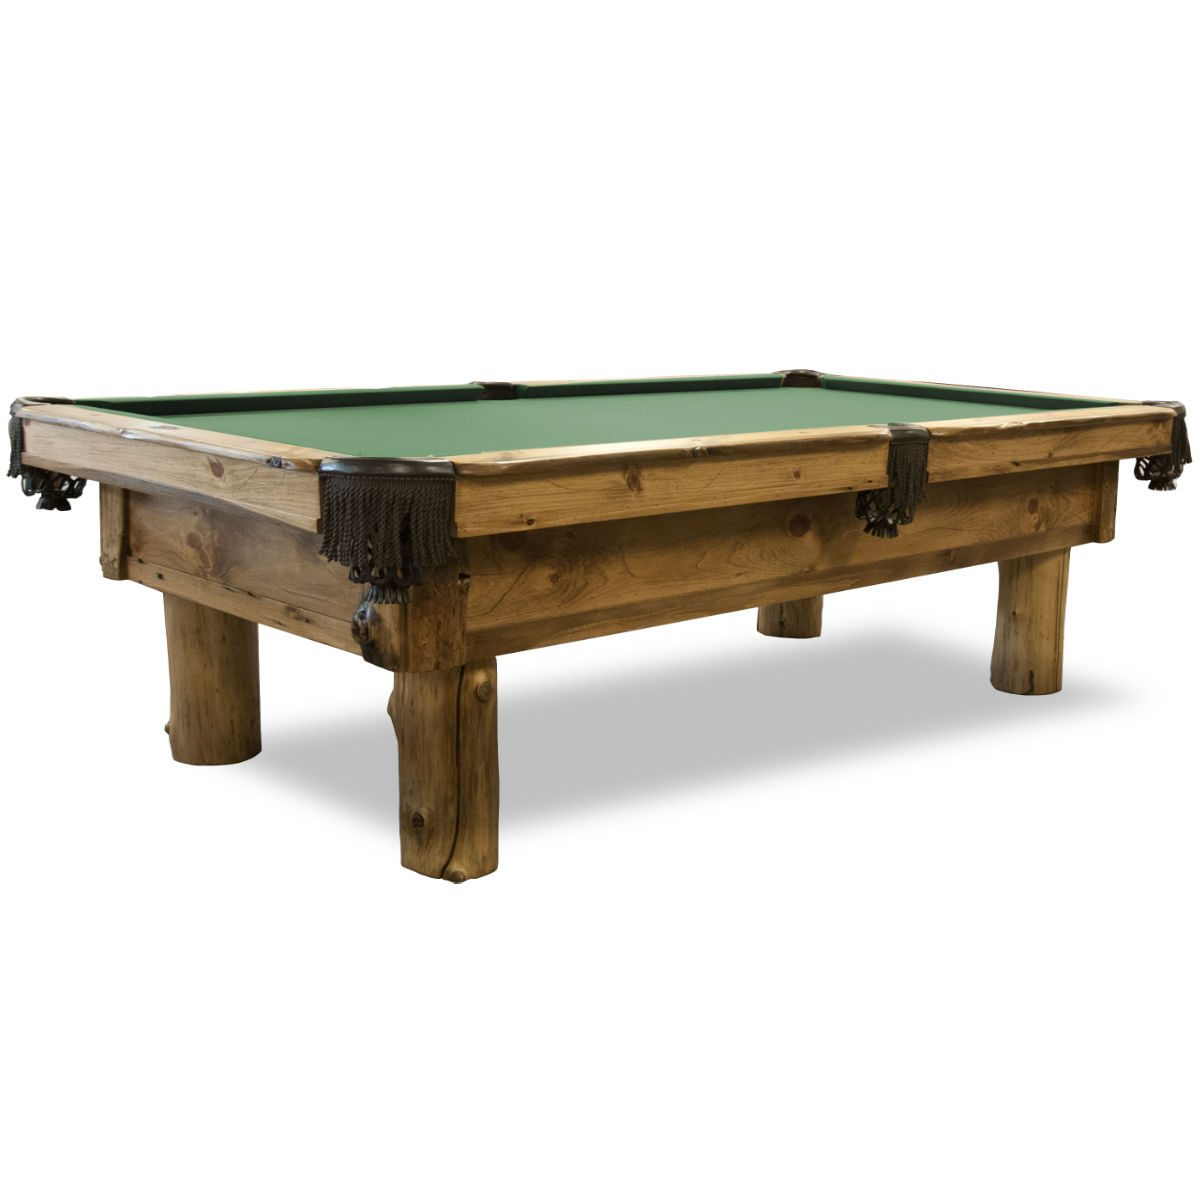 New pinehaven pool table olhausen montgomeryville pa for Table 09 reviews